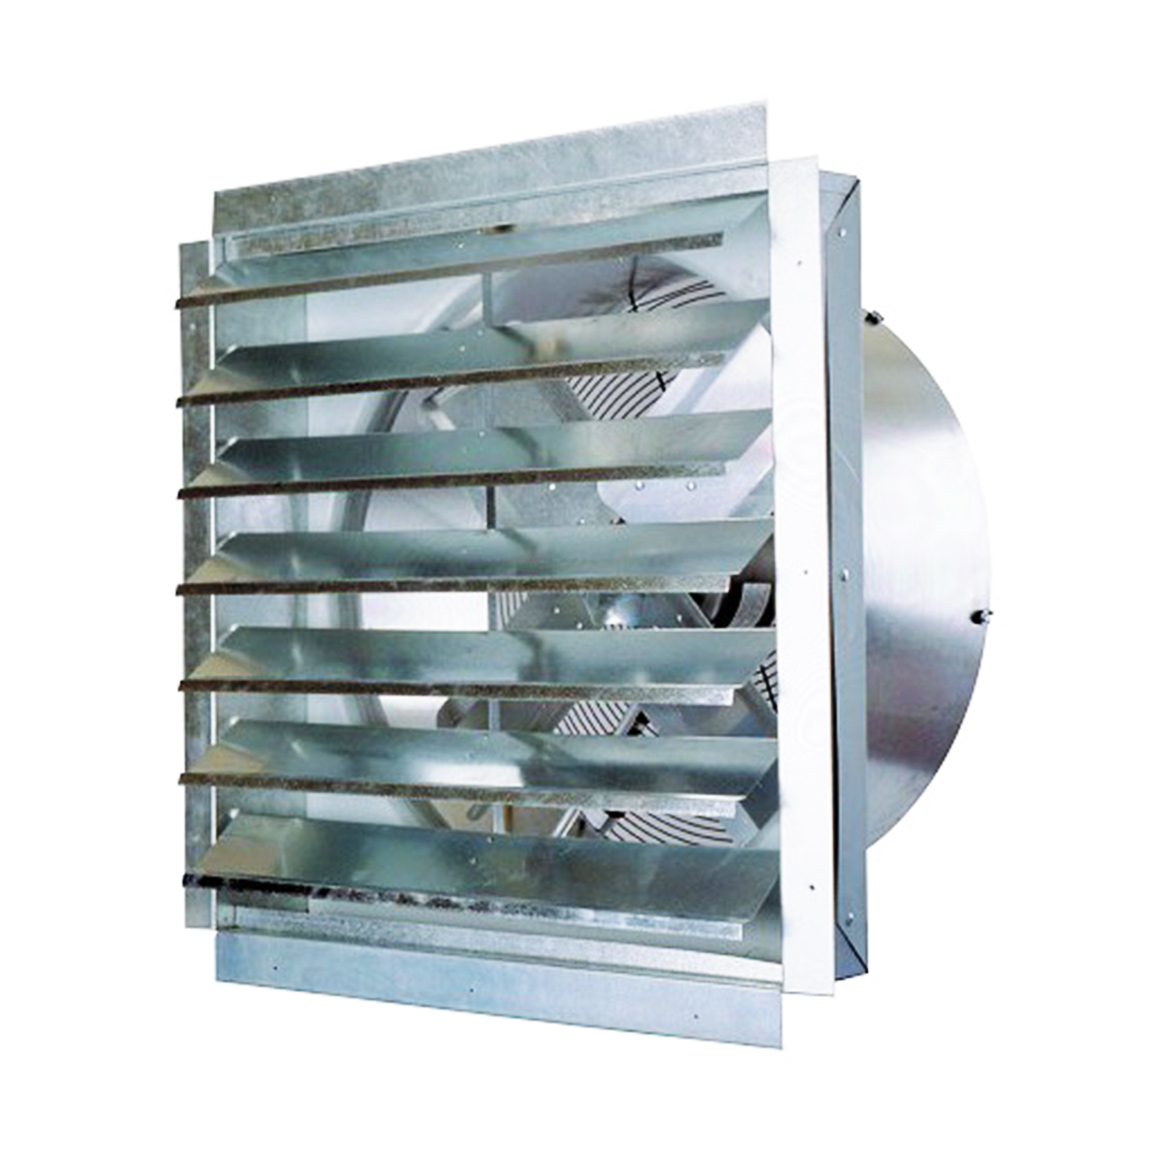 Details about Ventamatic IF30 30-Inch 5,500-CFM Heavy Duty Industrial  Exhaust Fan with Shutter